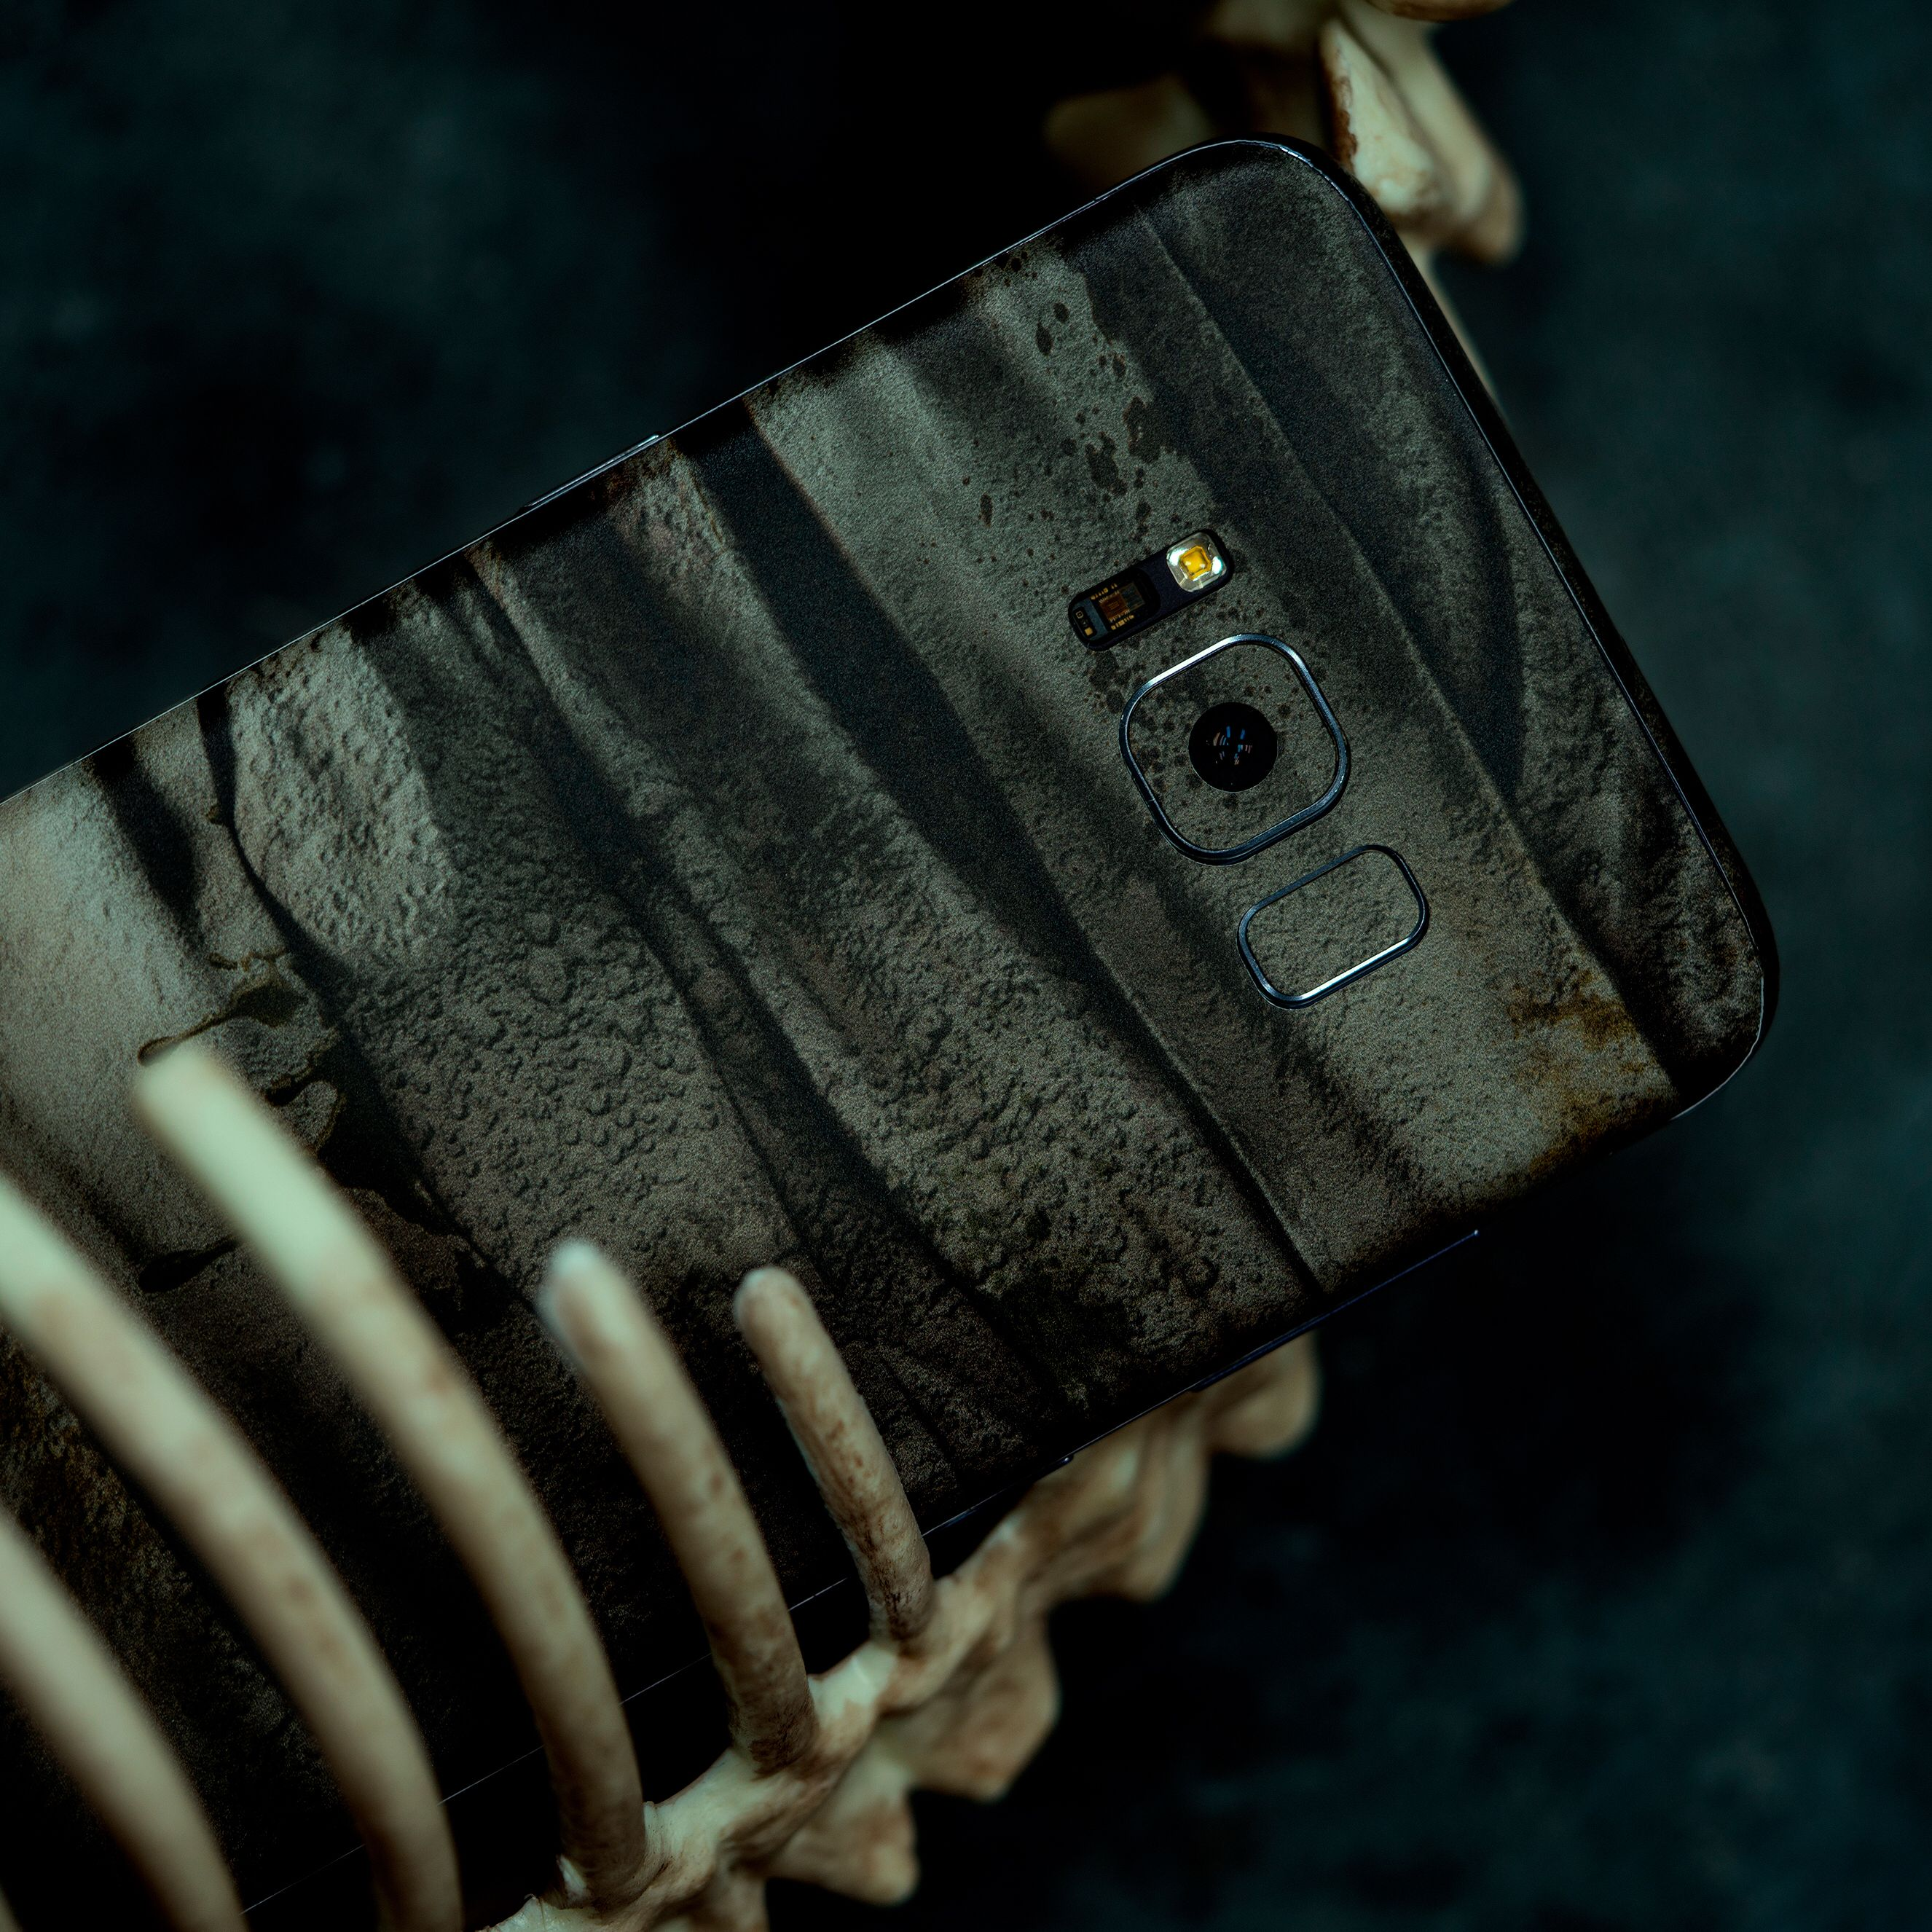 Wrap it up with slickwraps and style your phone for